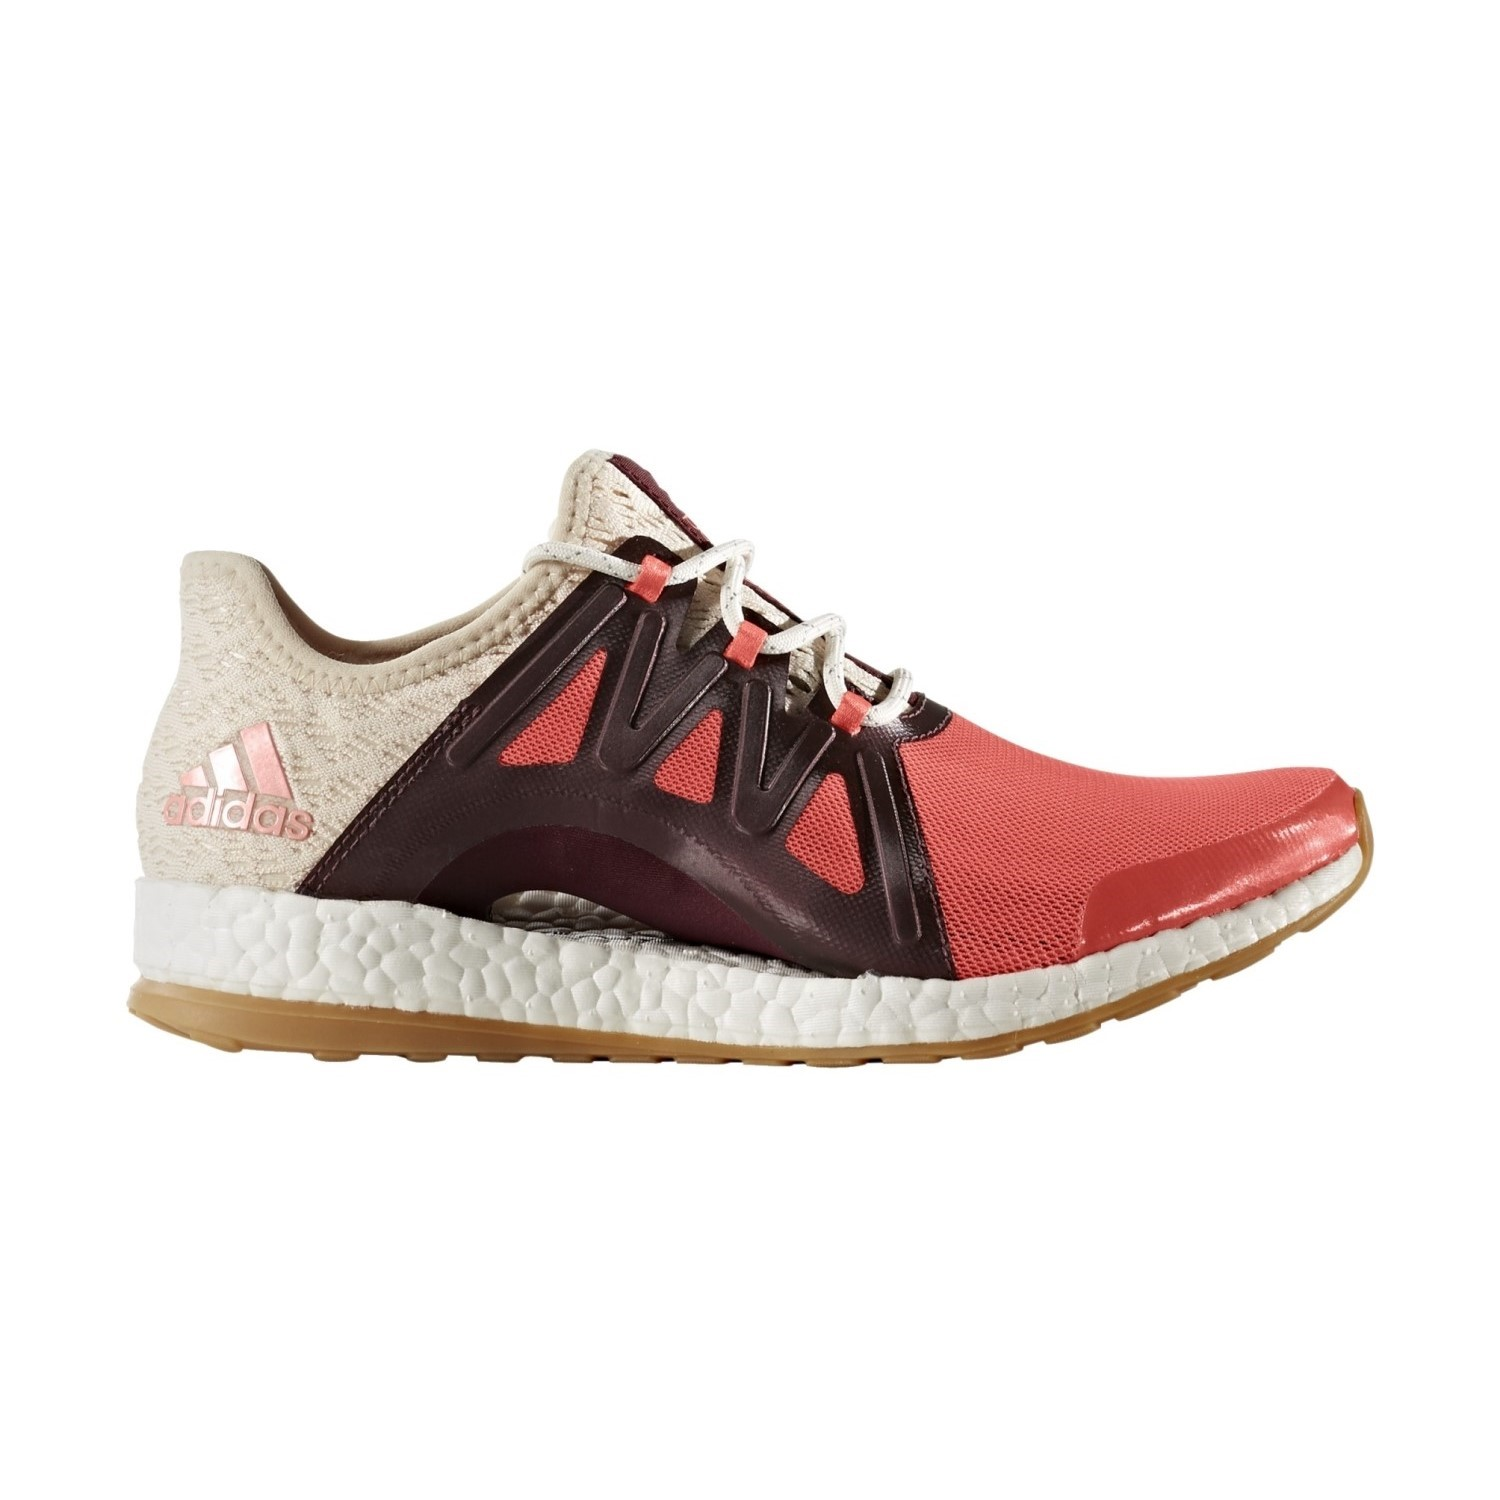 f44556ddad1a0 Adidas Pure Boost Xpose Clima - Womens Running Shoes - Easy  Coral Linen Maroon